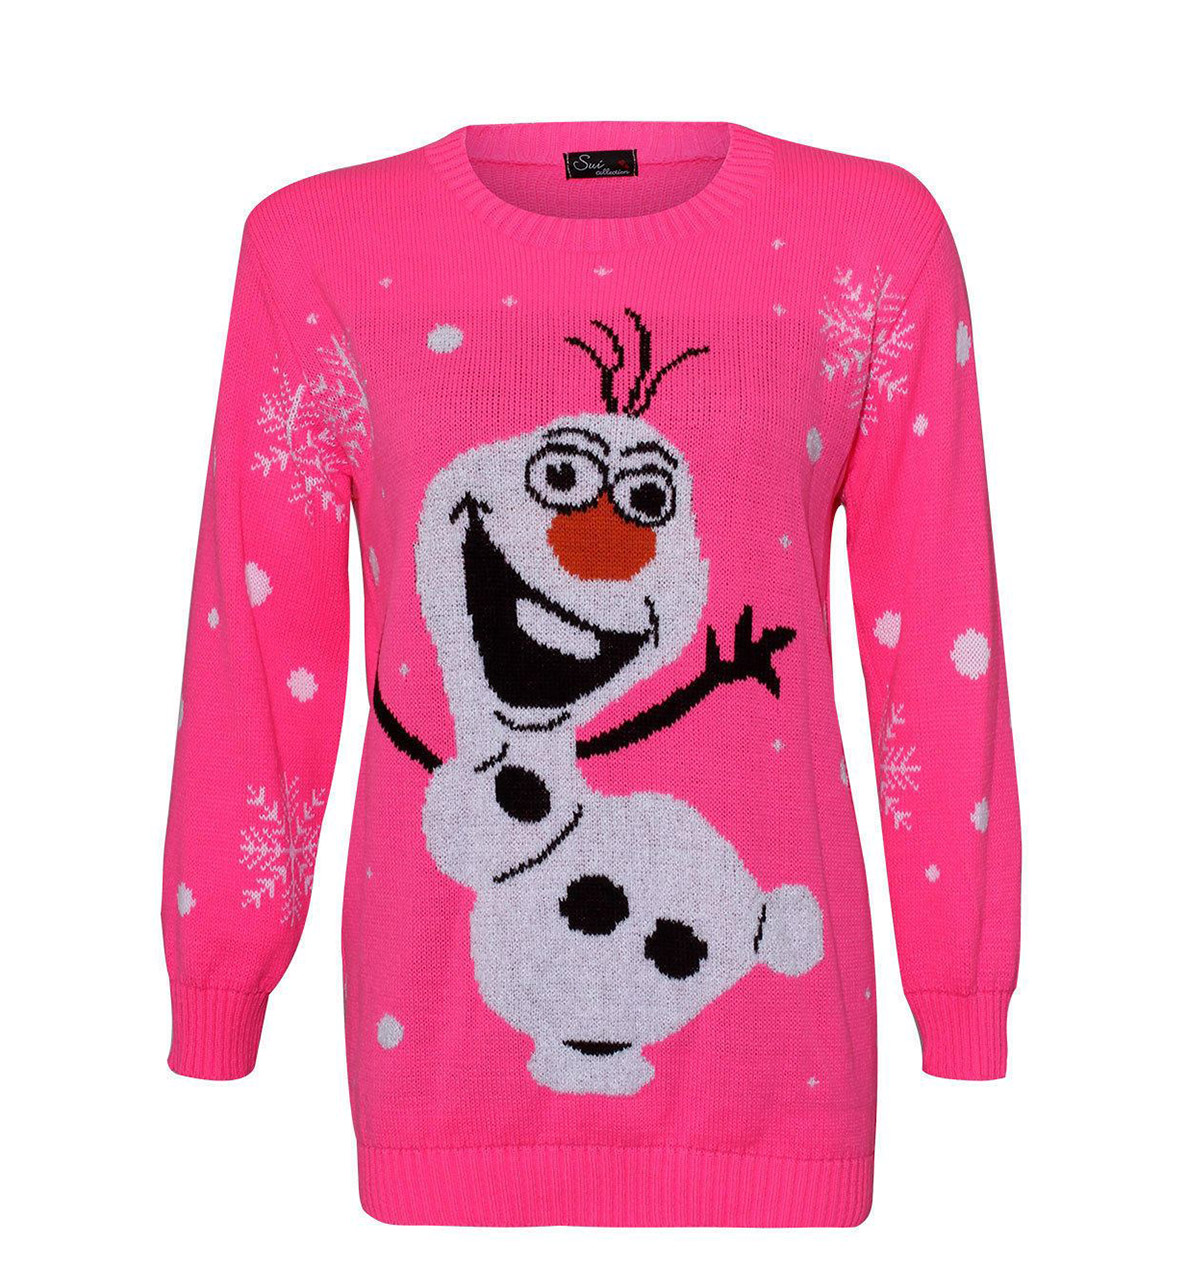 Tacky Olaf Christmas Sweater Knitted In Pink - Ugly Christmas ...